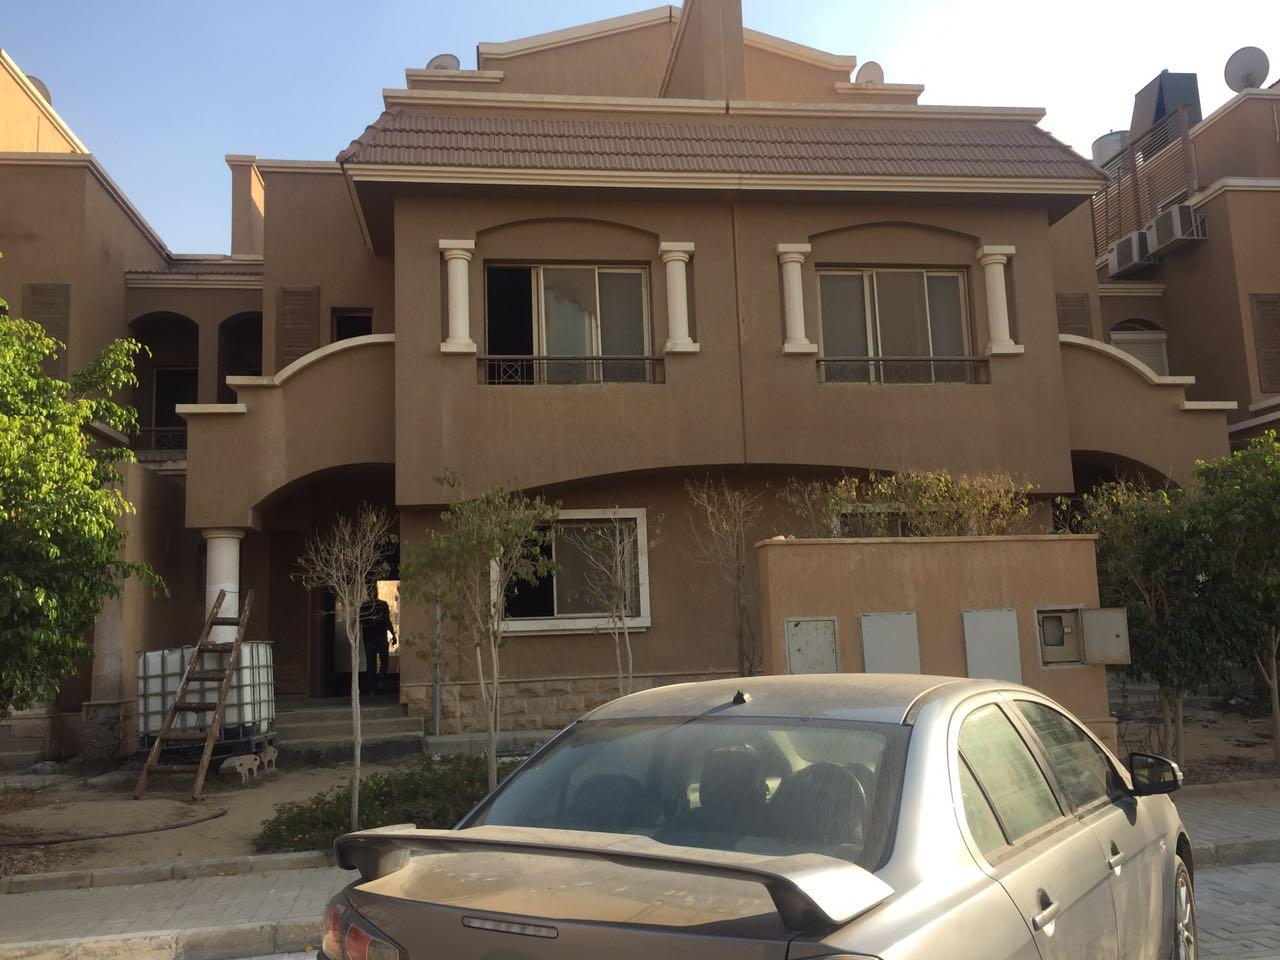 Town house for sale in mina residence compound new Cairo